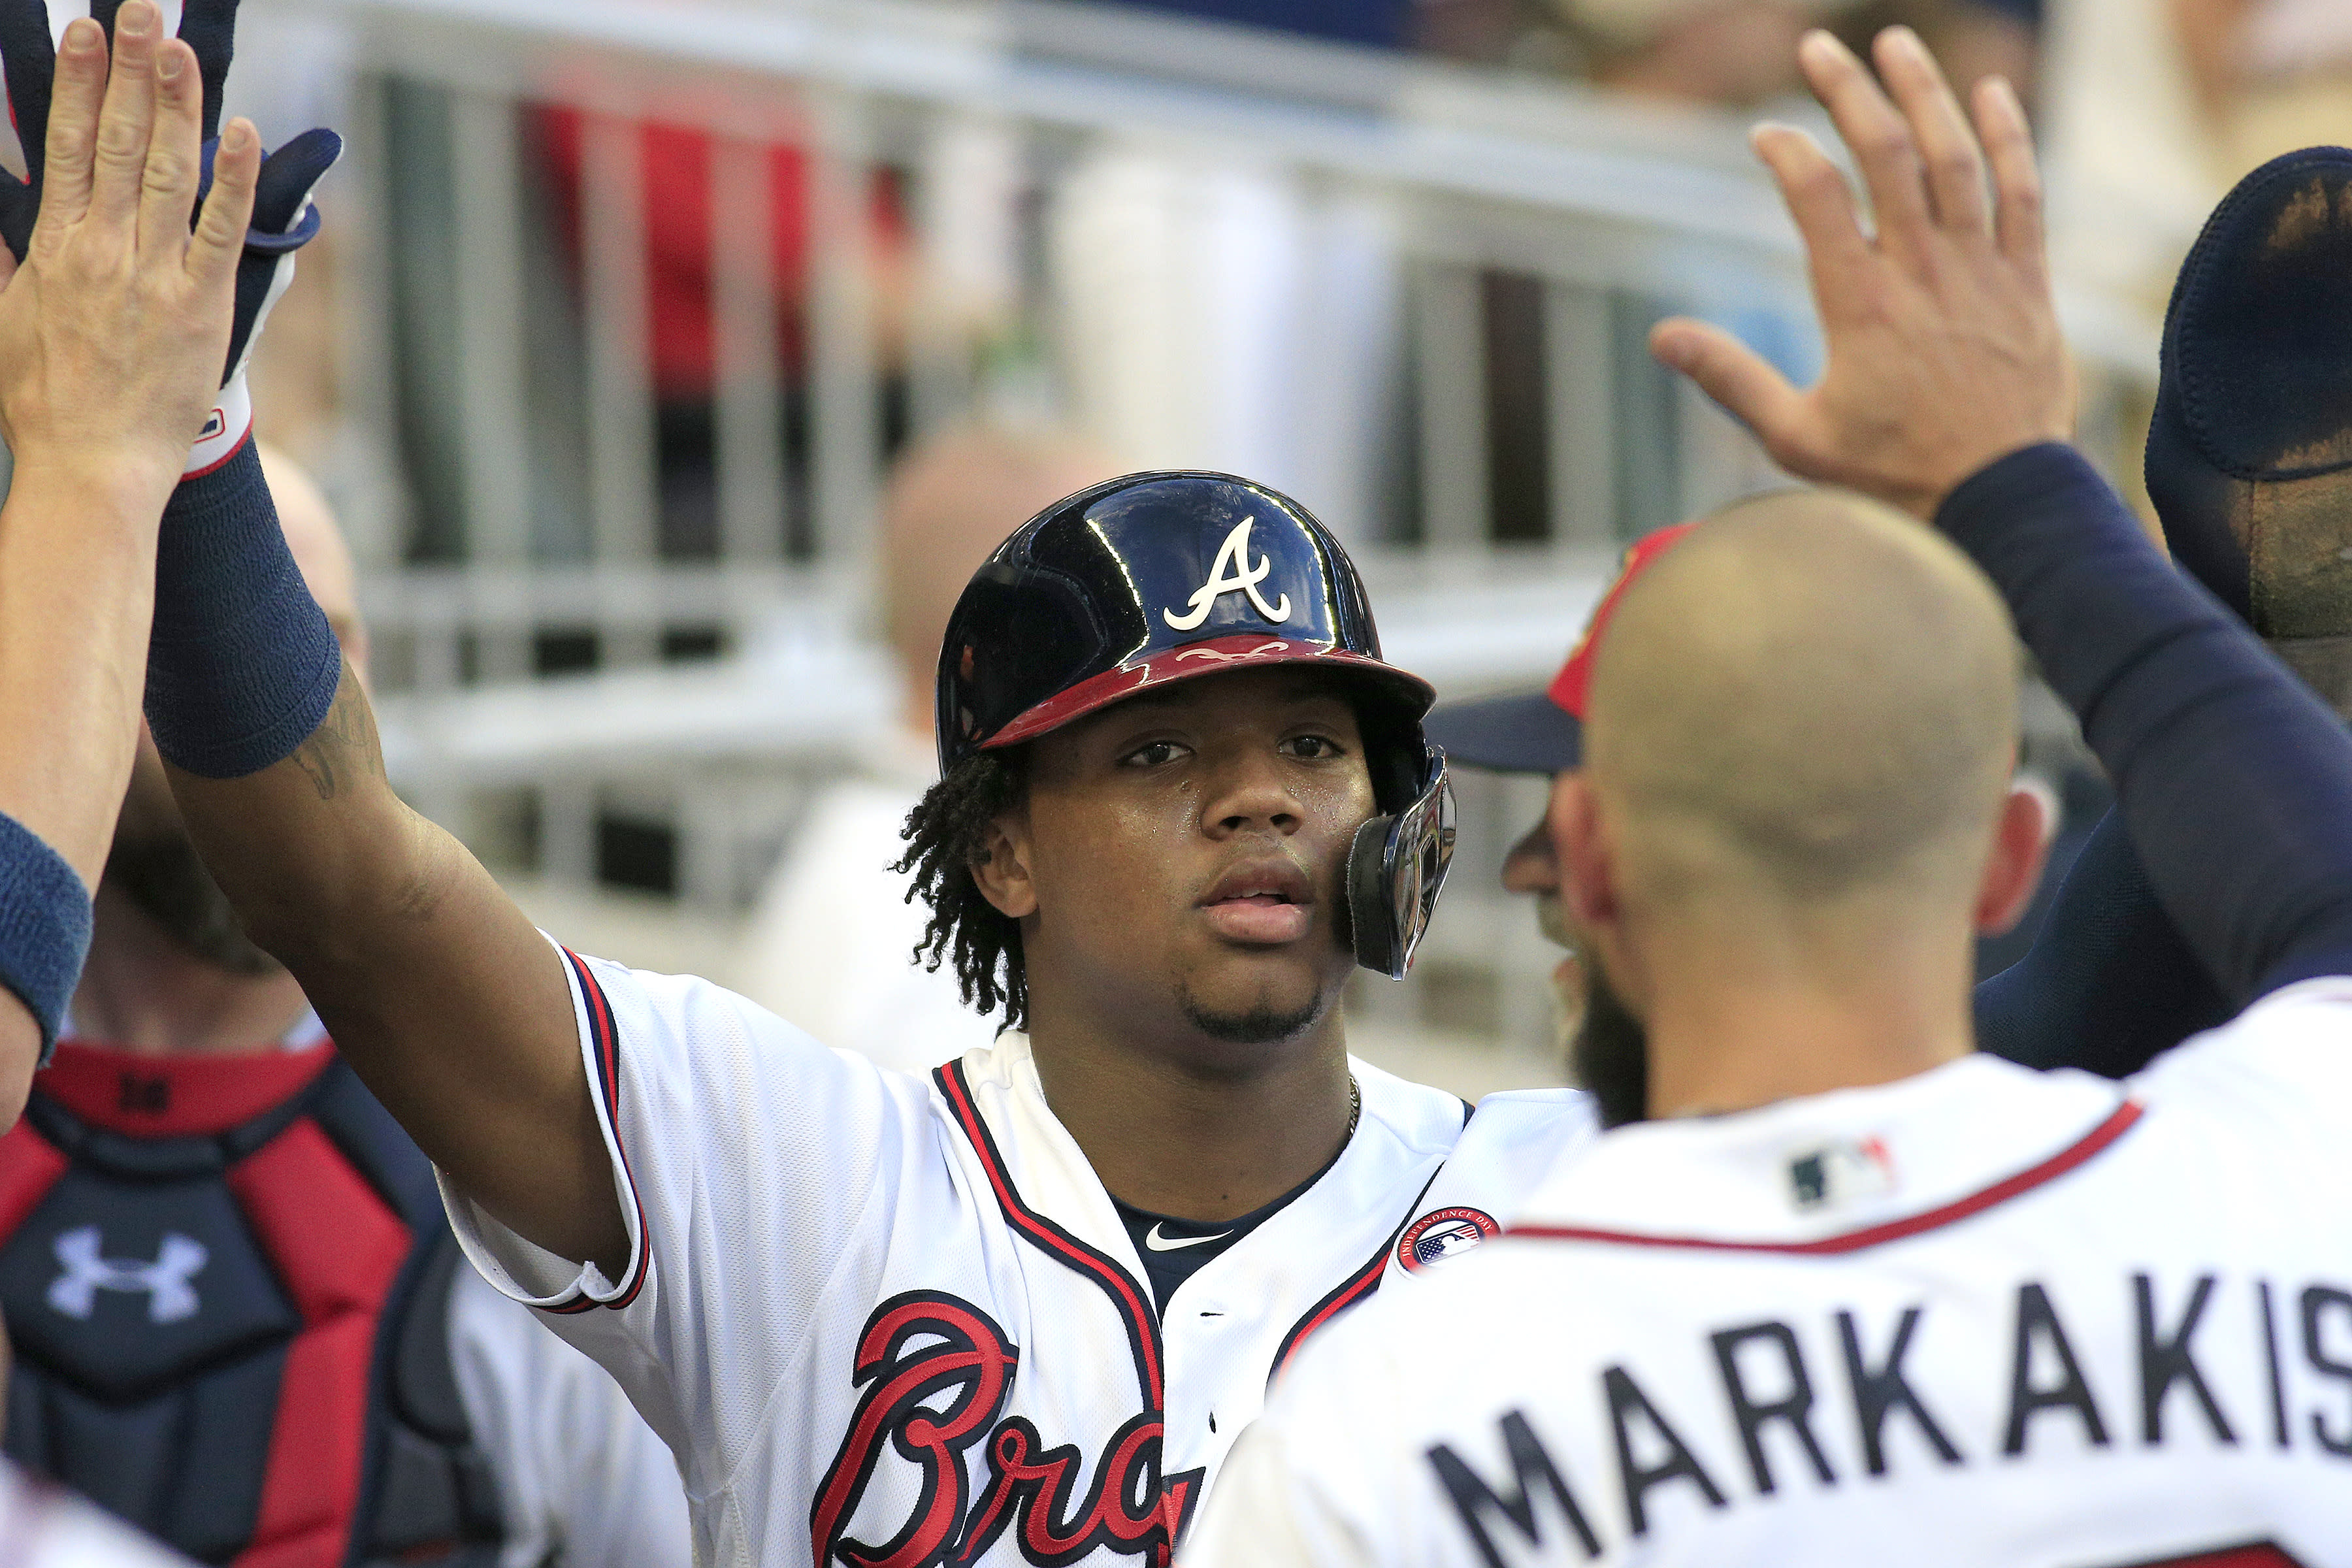 Seven bold predictions for the rest of MLB season